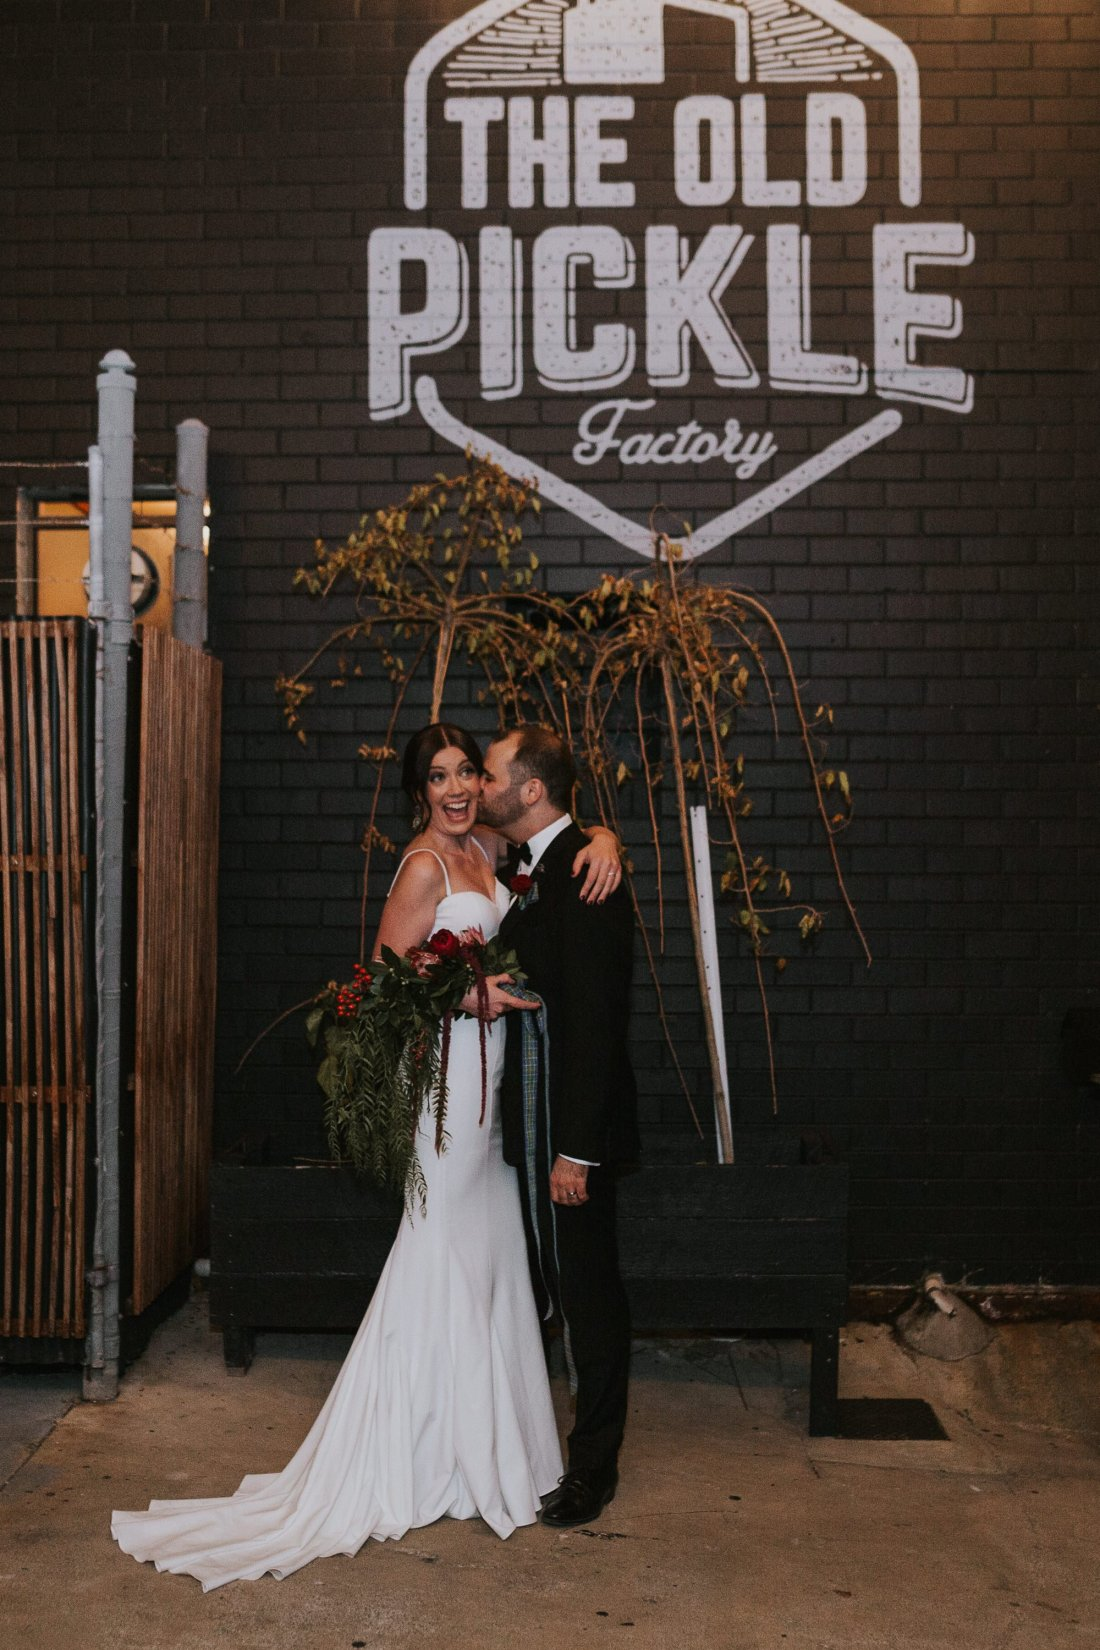 Old Pickle Factory Wedding | Perth Wedding Photographer | Night Wedding Perth | Ebony Blush Photography | Zoe Theiadore | C+T75